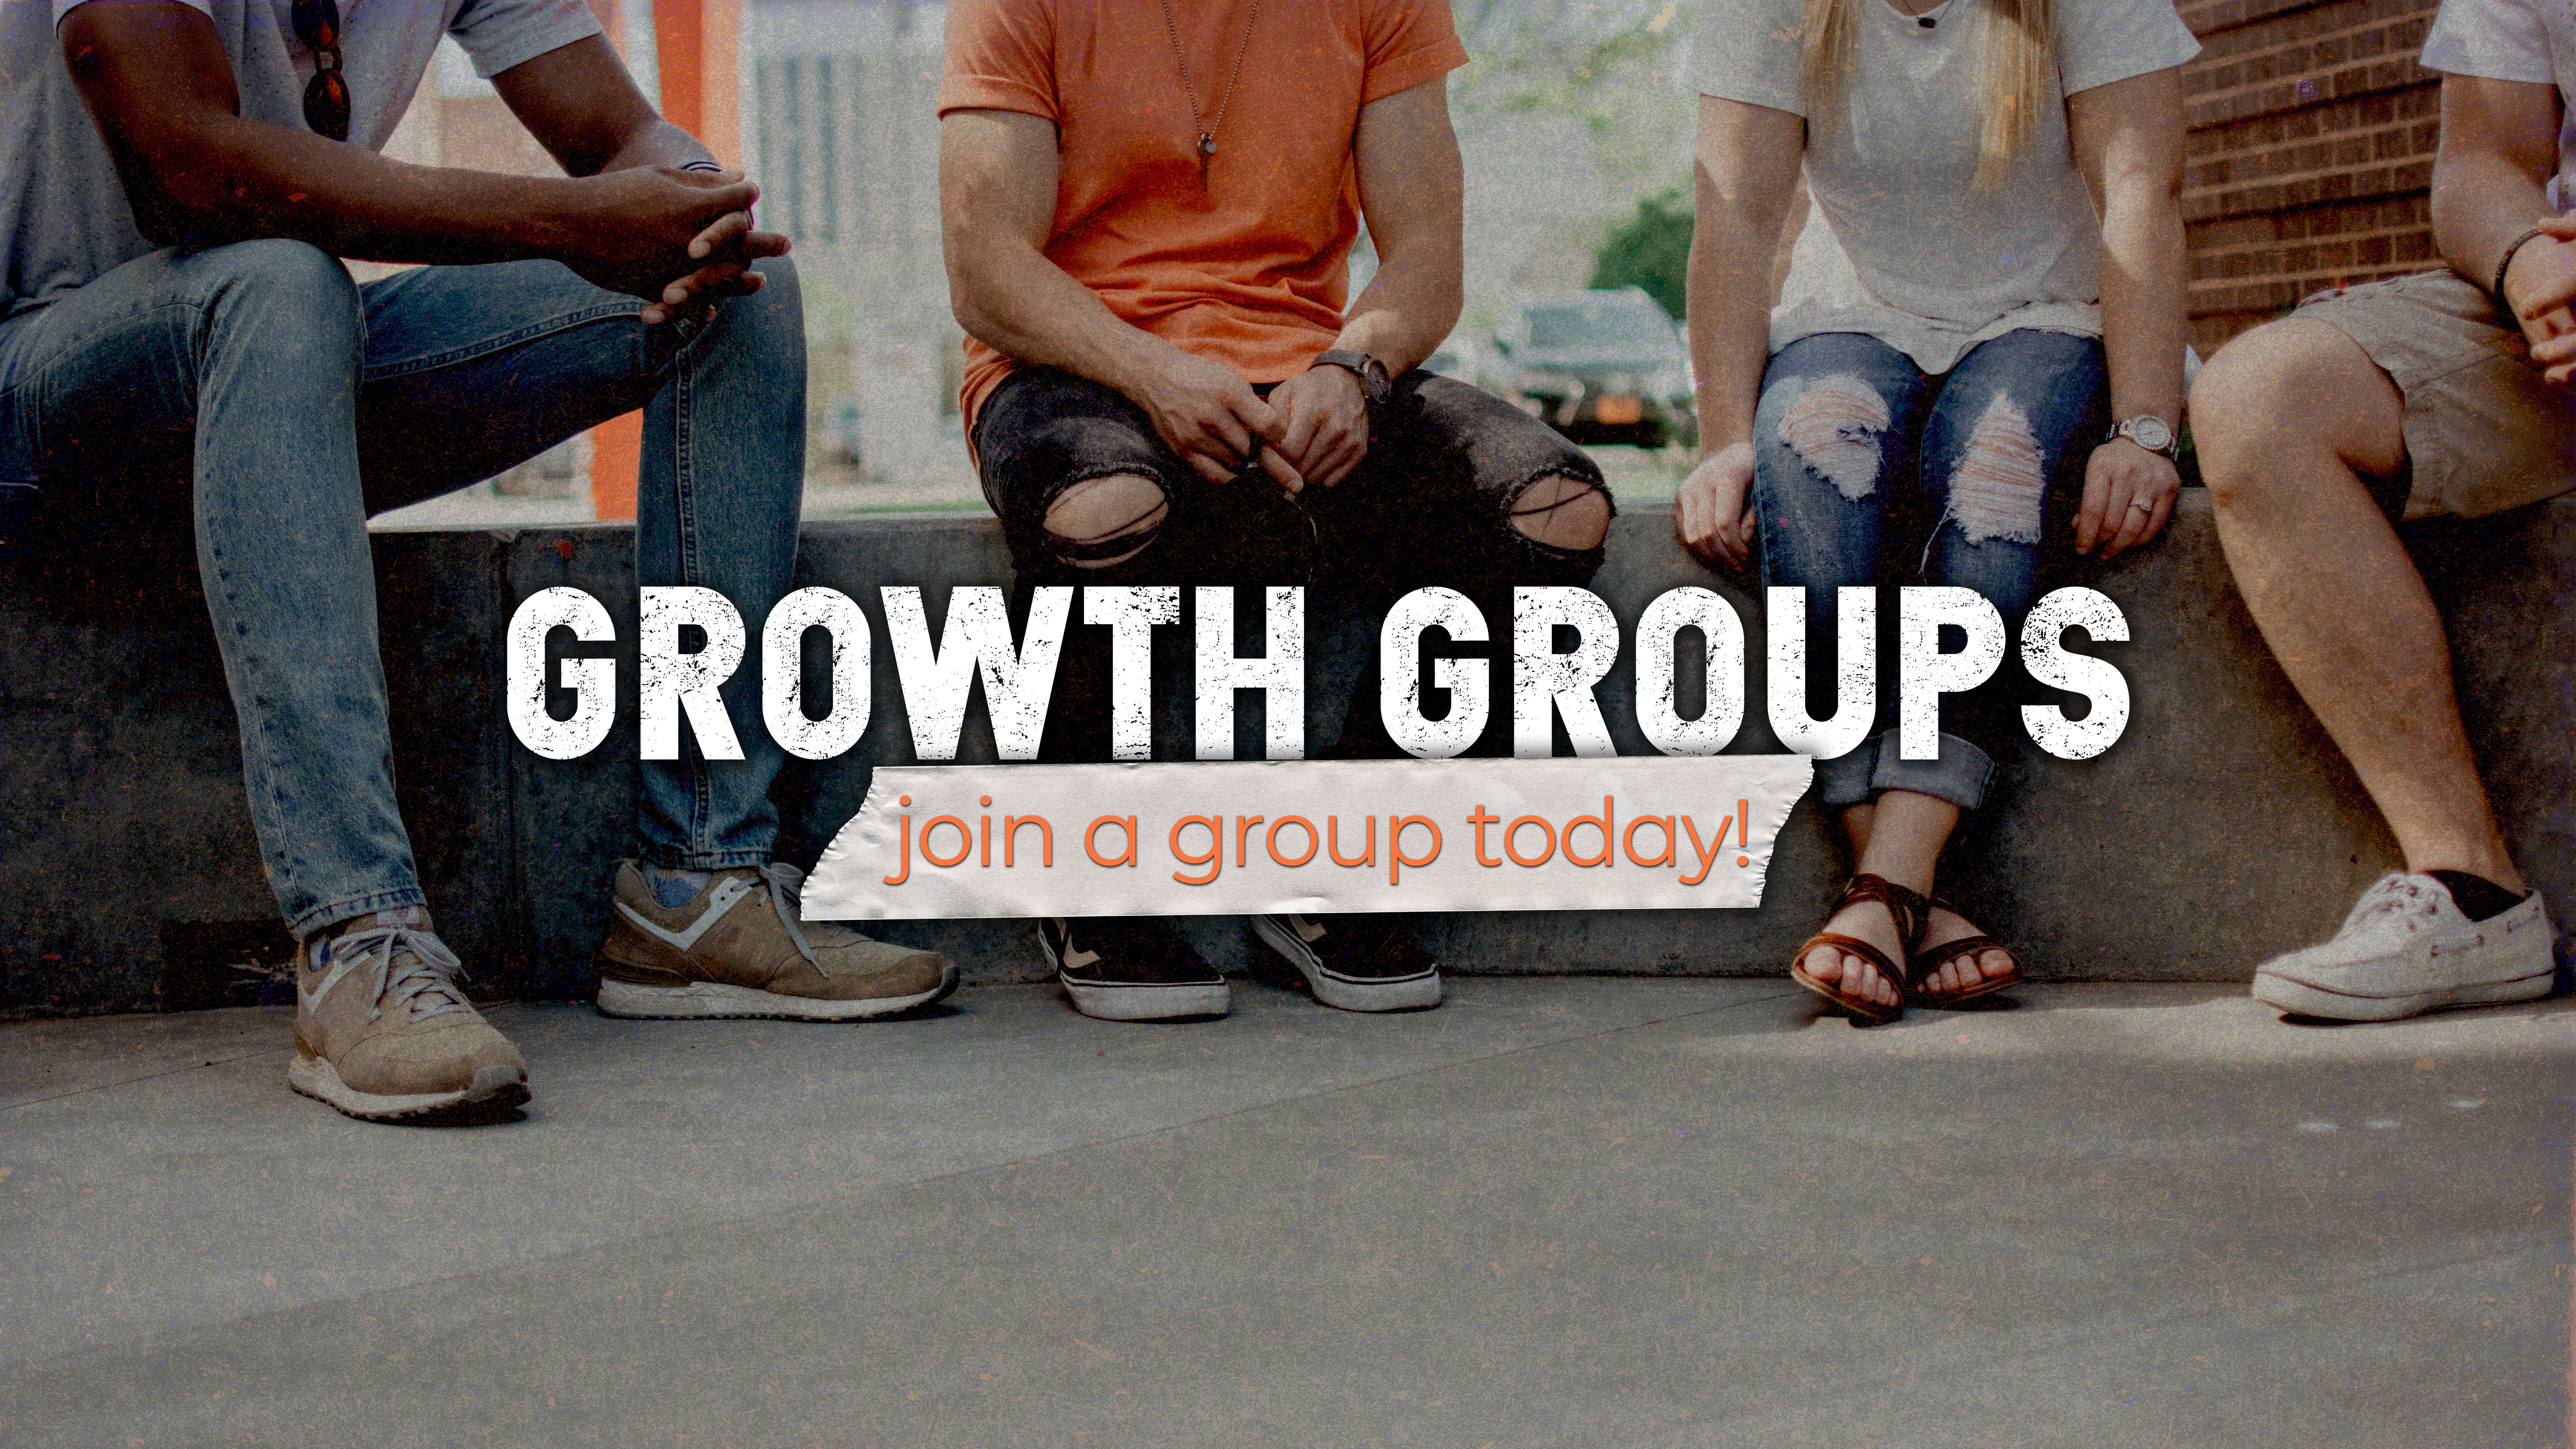 Growth Groups (1) image